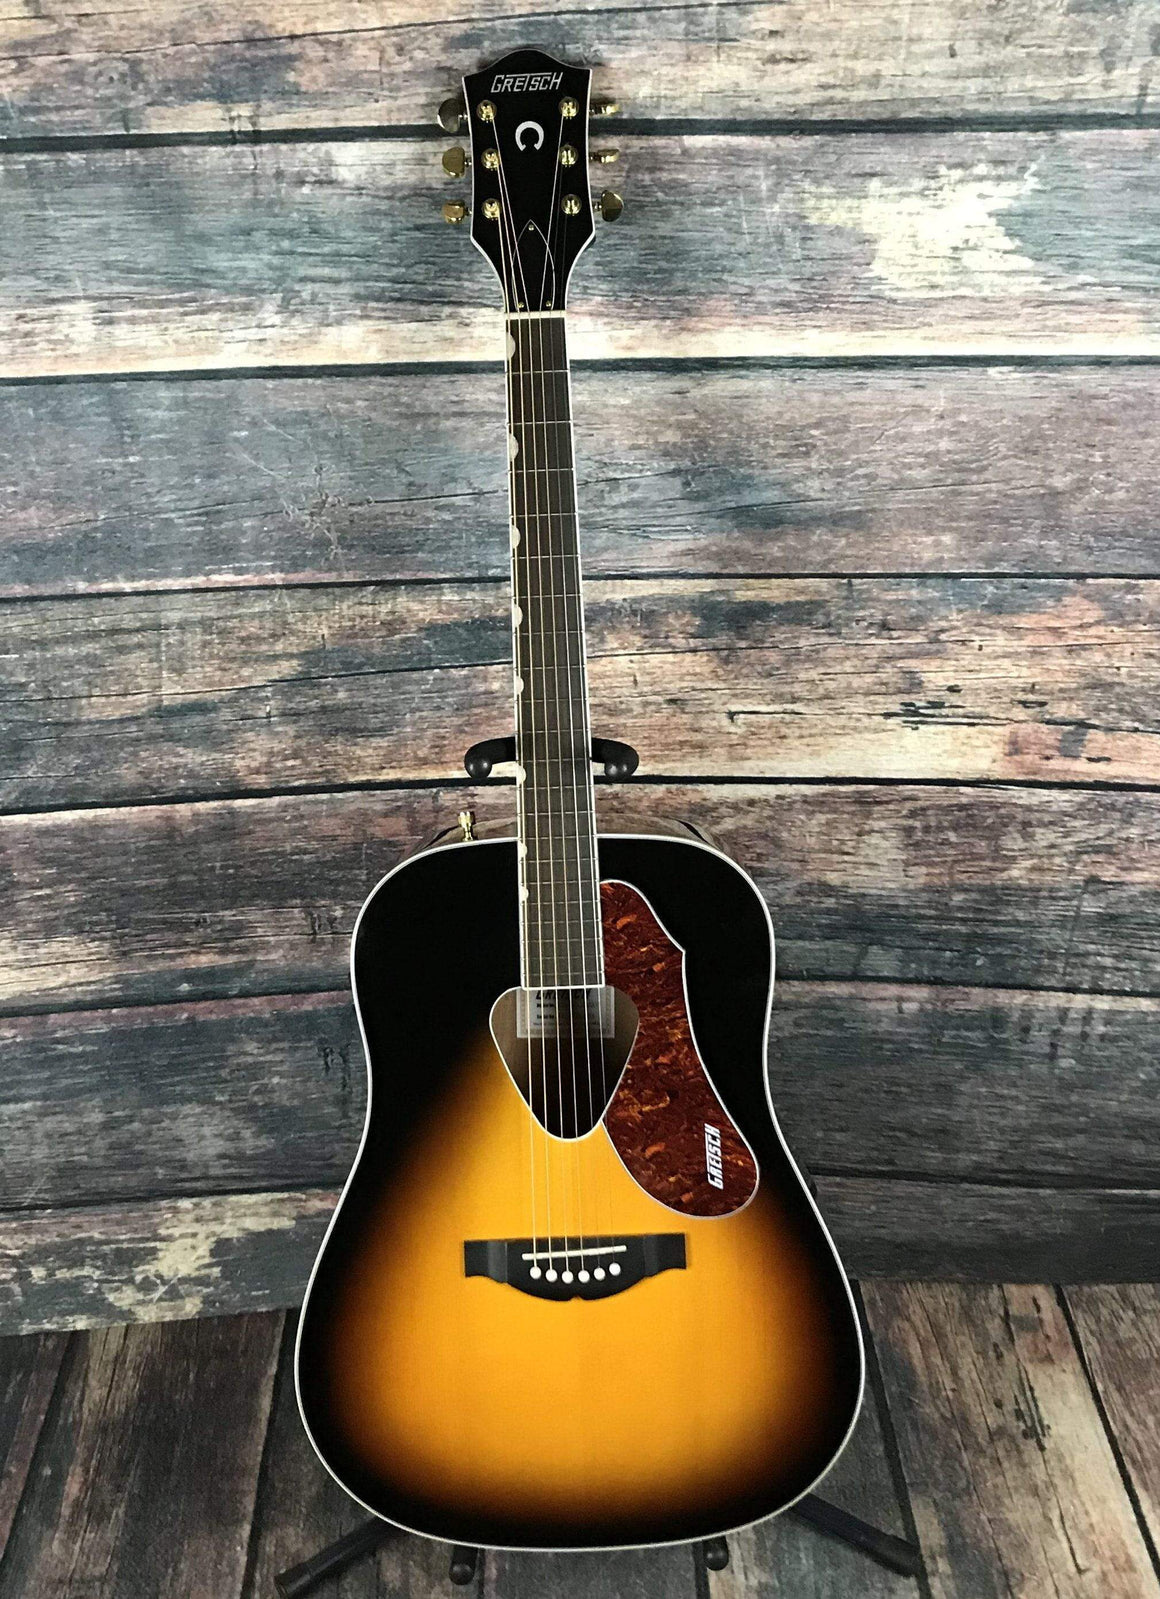 Gretsch Acoustic Guitar Used Gretsch G5024E Rancher Acoustic Electric with Gig Bag